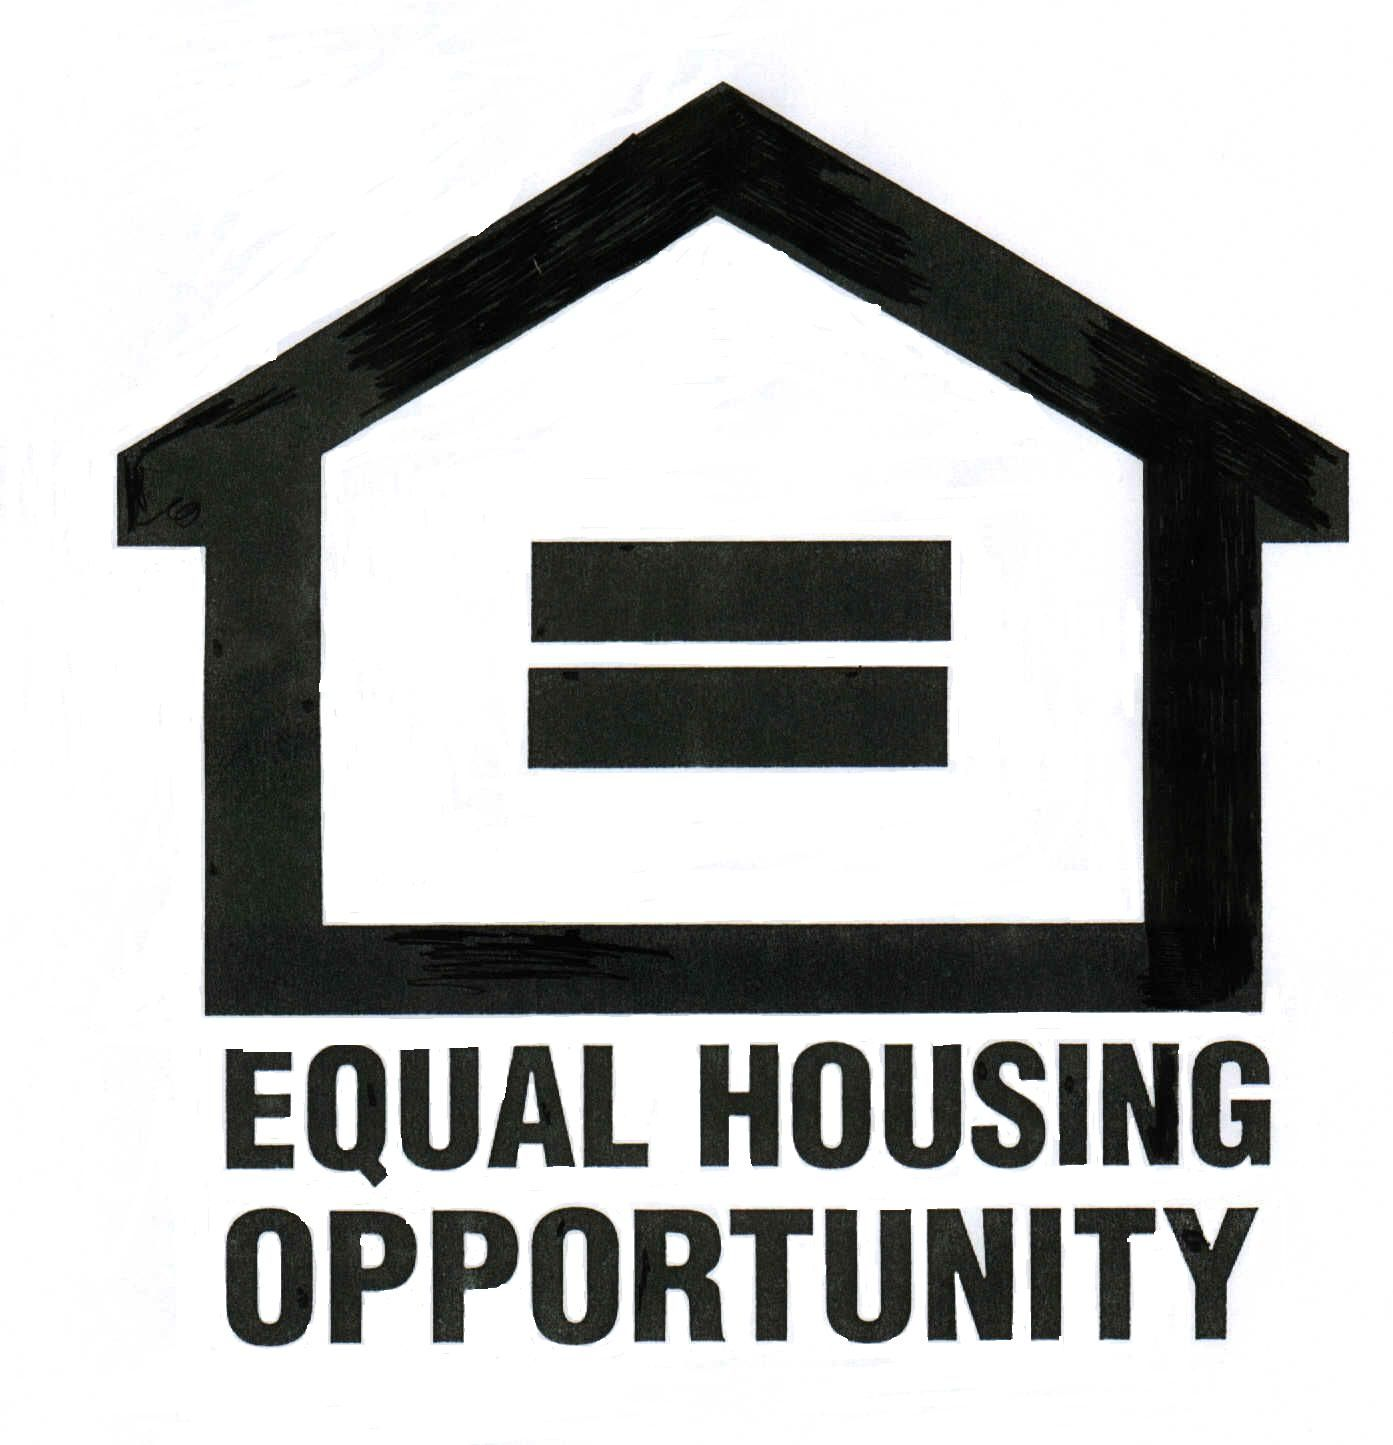 Equal Housing Opportunity Logo - Equal housing opportunity Logos